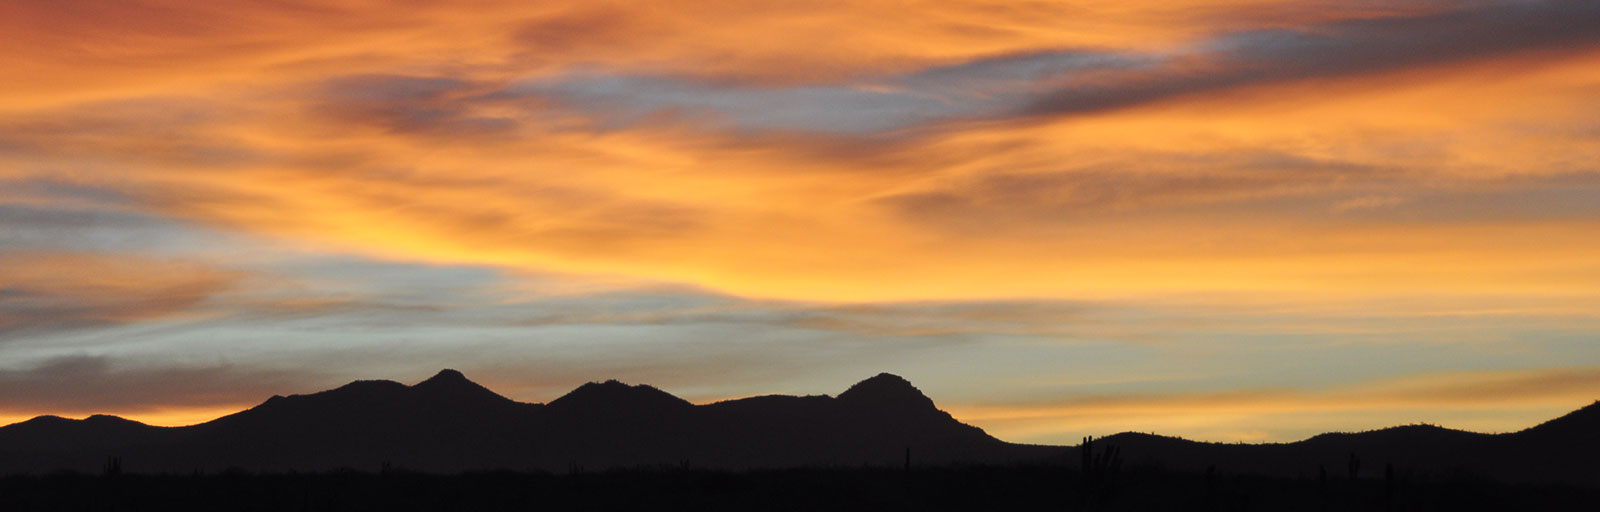 Hiking & Yoga Retreat in Mexico: Sunset and Mountain Silhouette